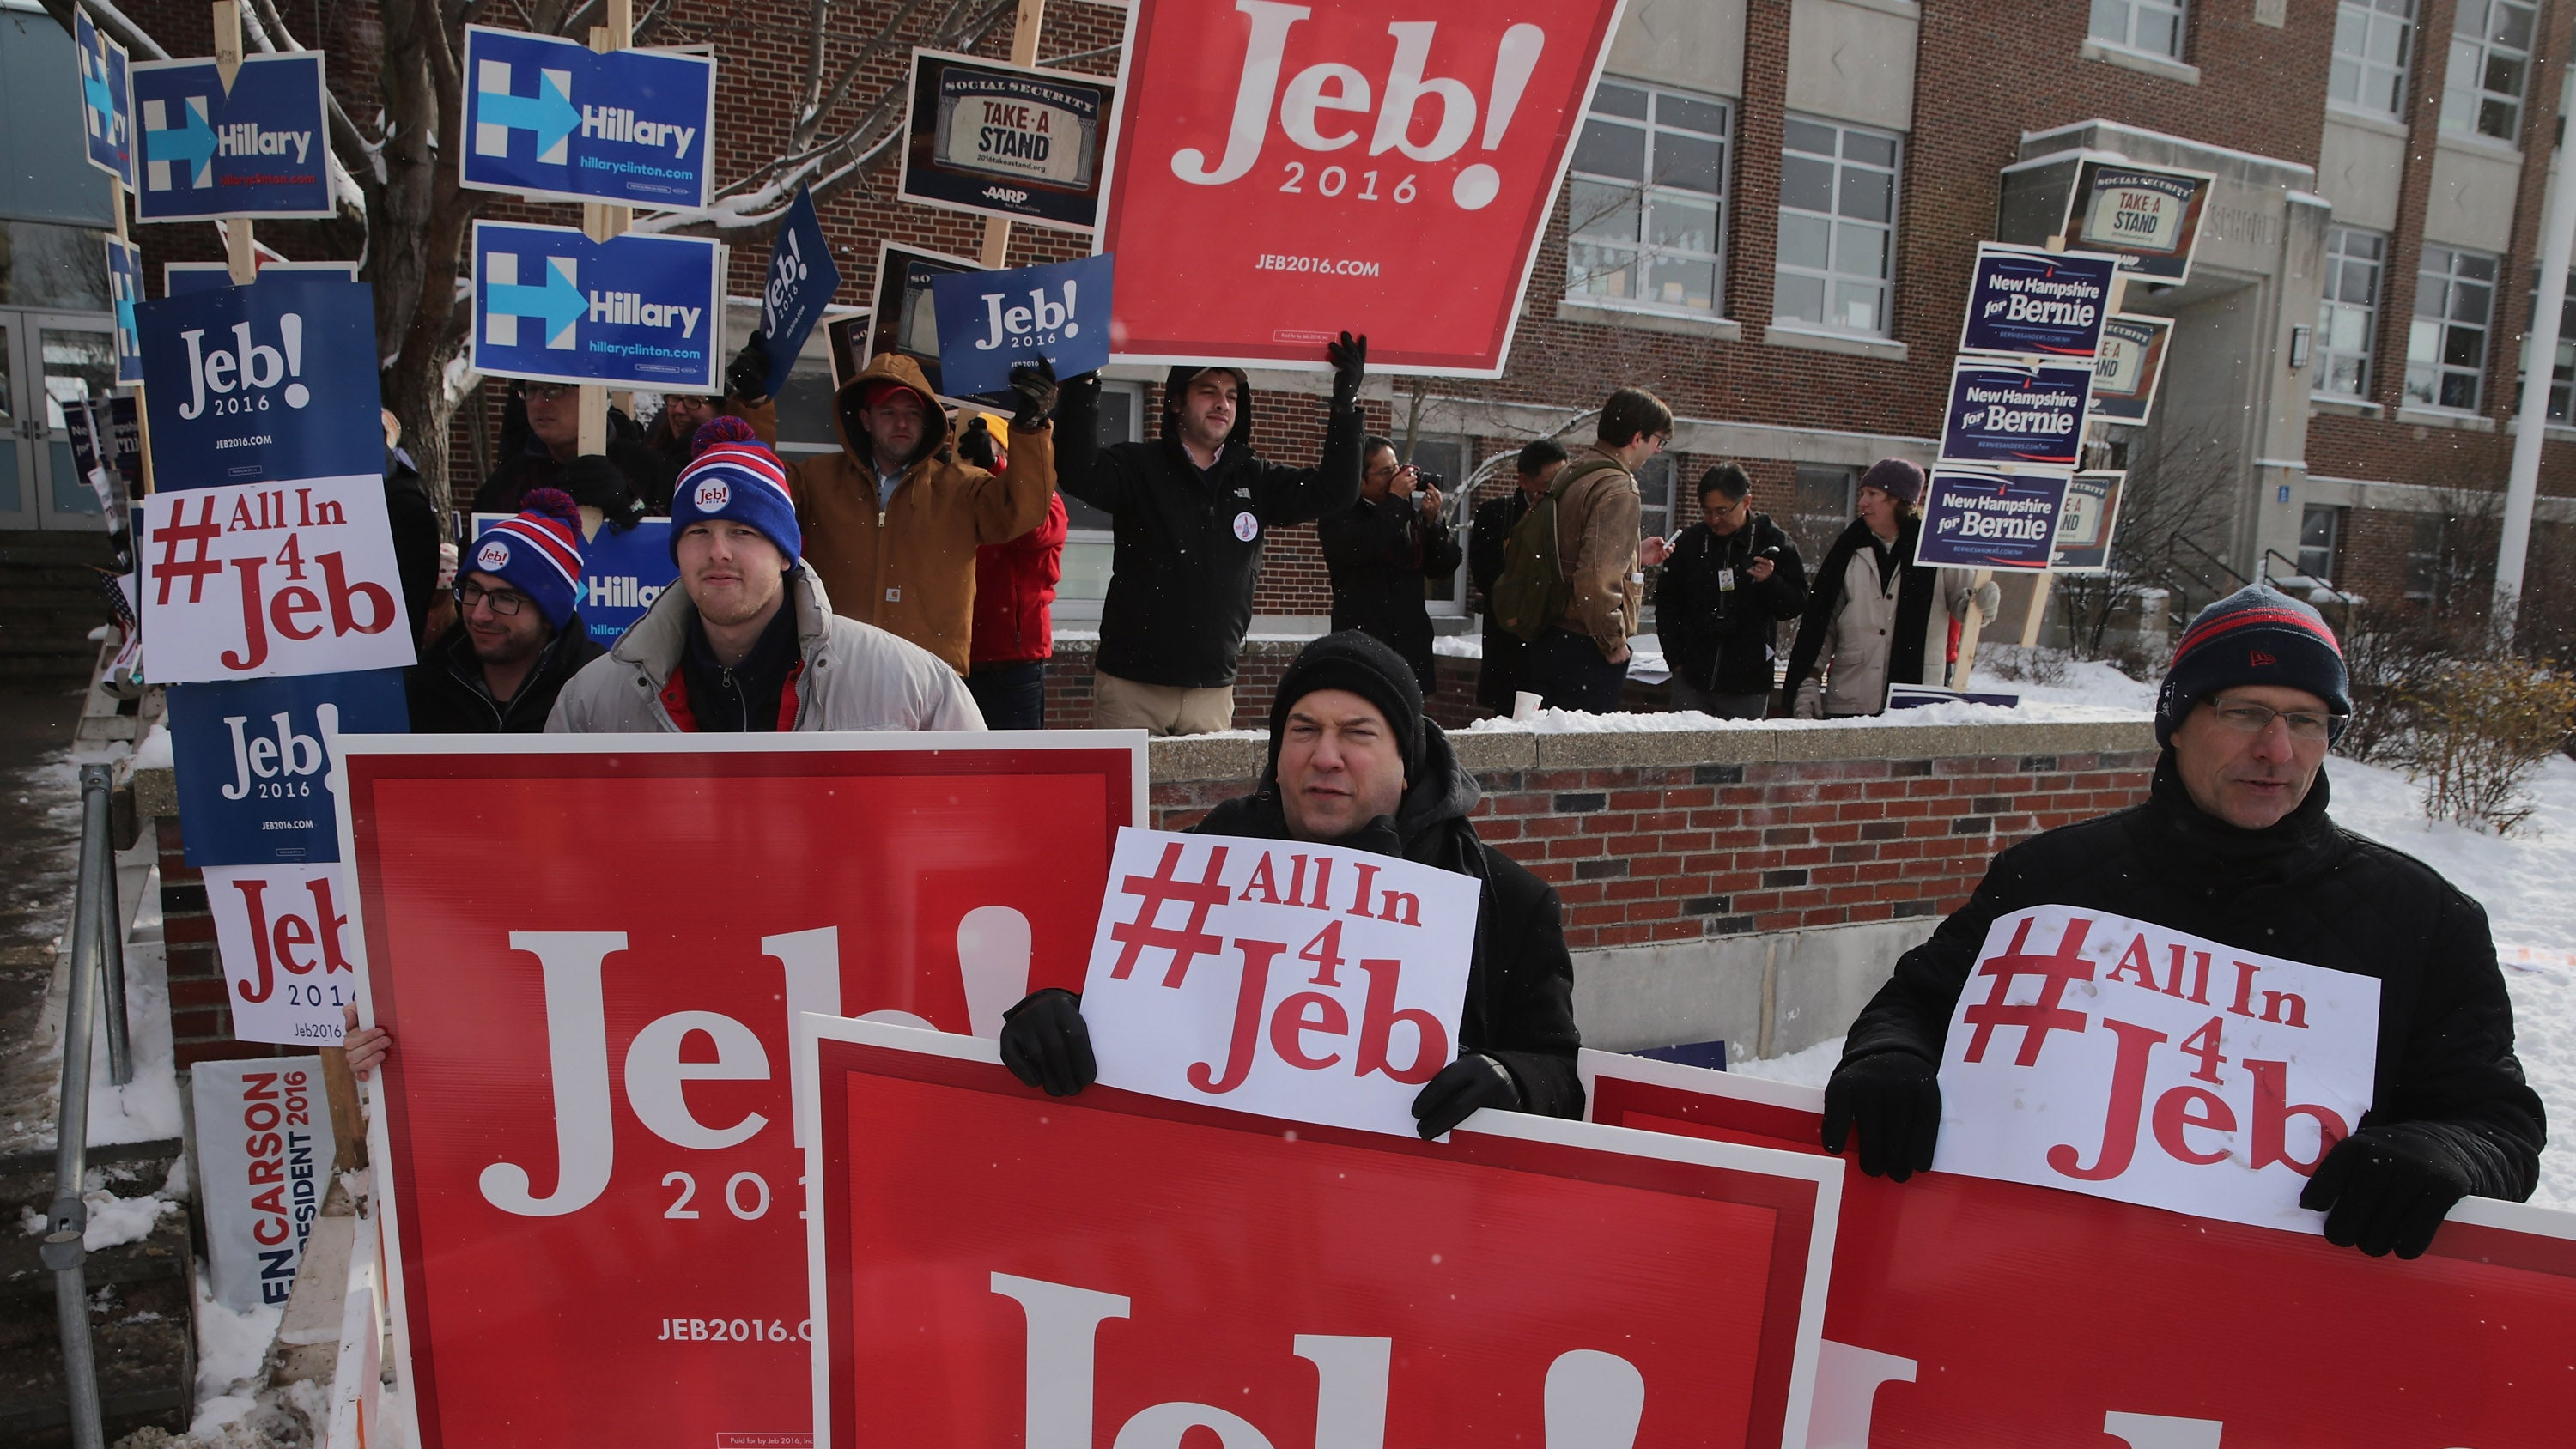 Supporters of Republican presidential candidate Jeb Bush hold campaign signs while waiting for Bush outside the polling place at Webster School on primary day in Manchester, New Hampshire.